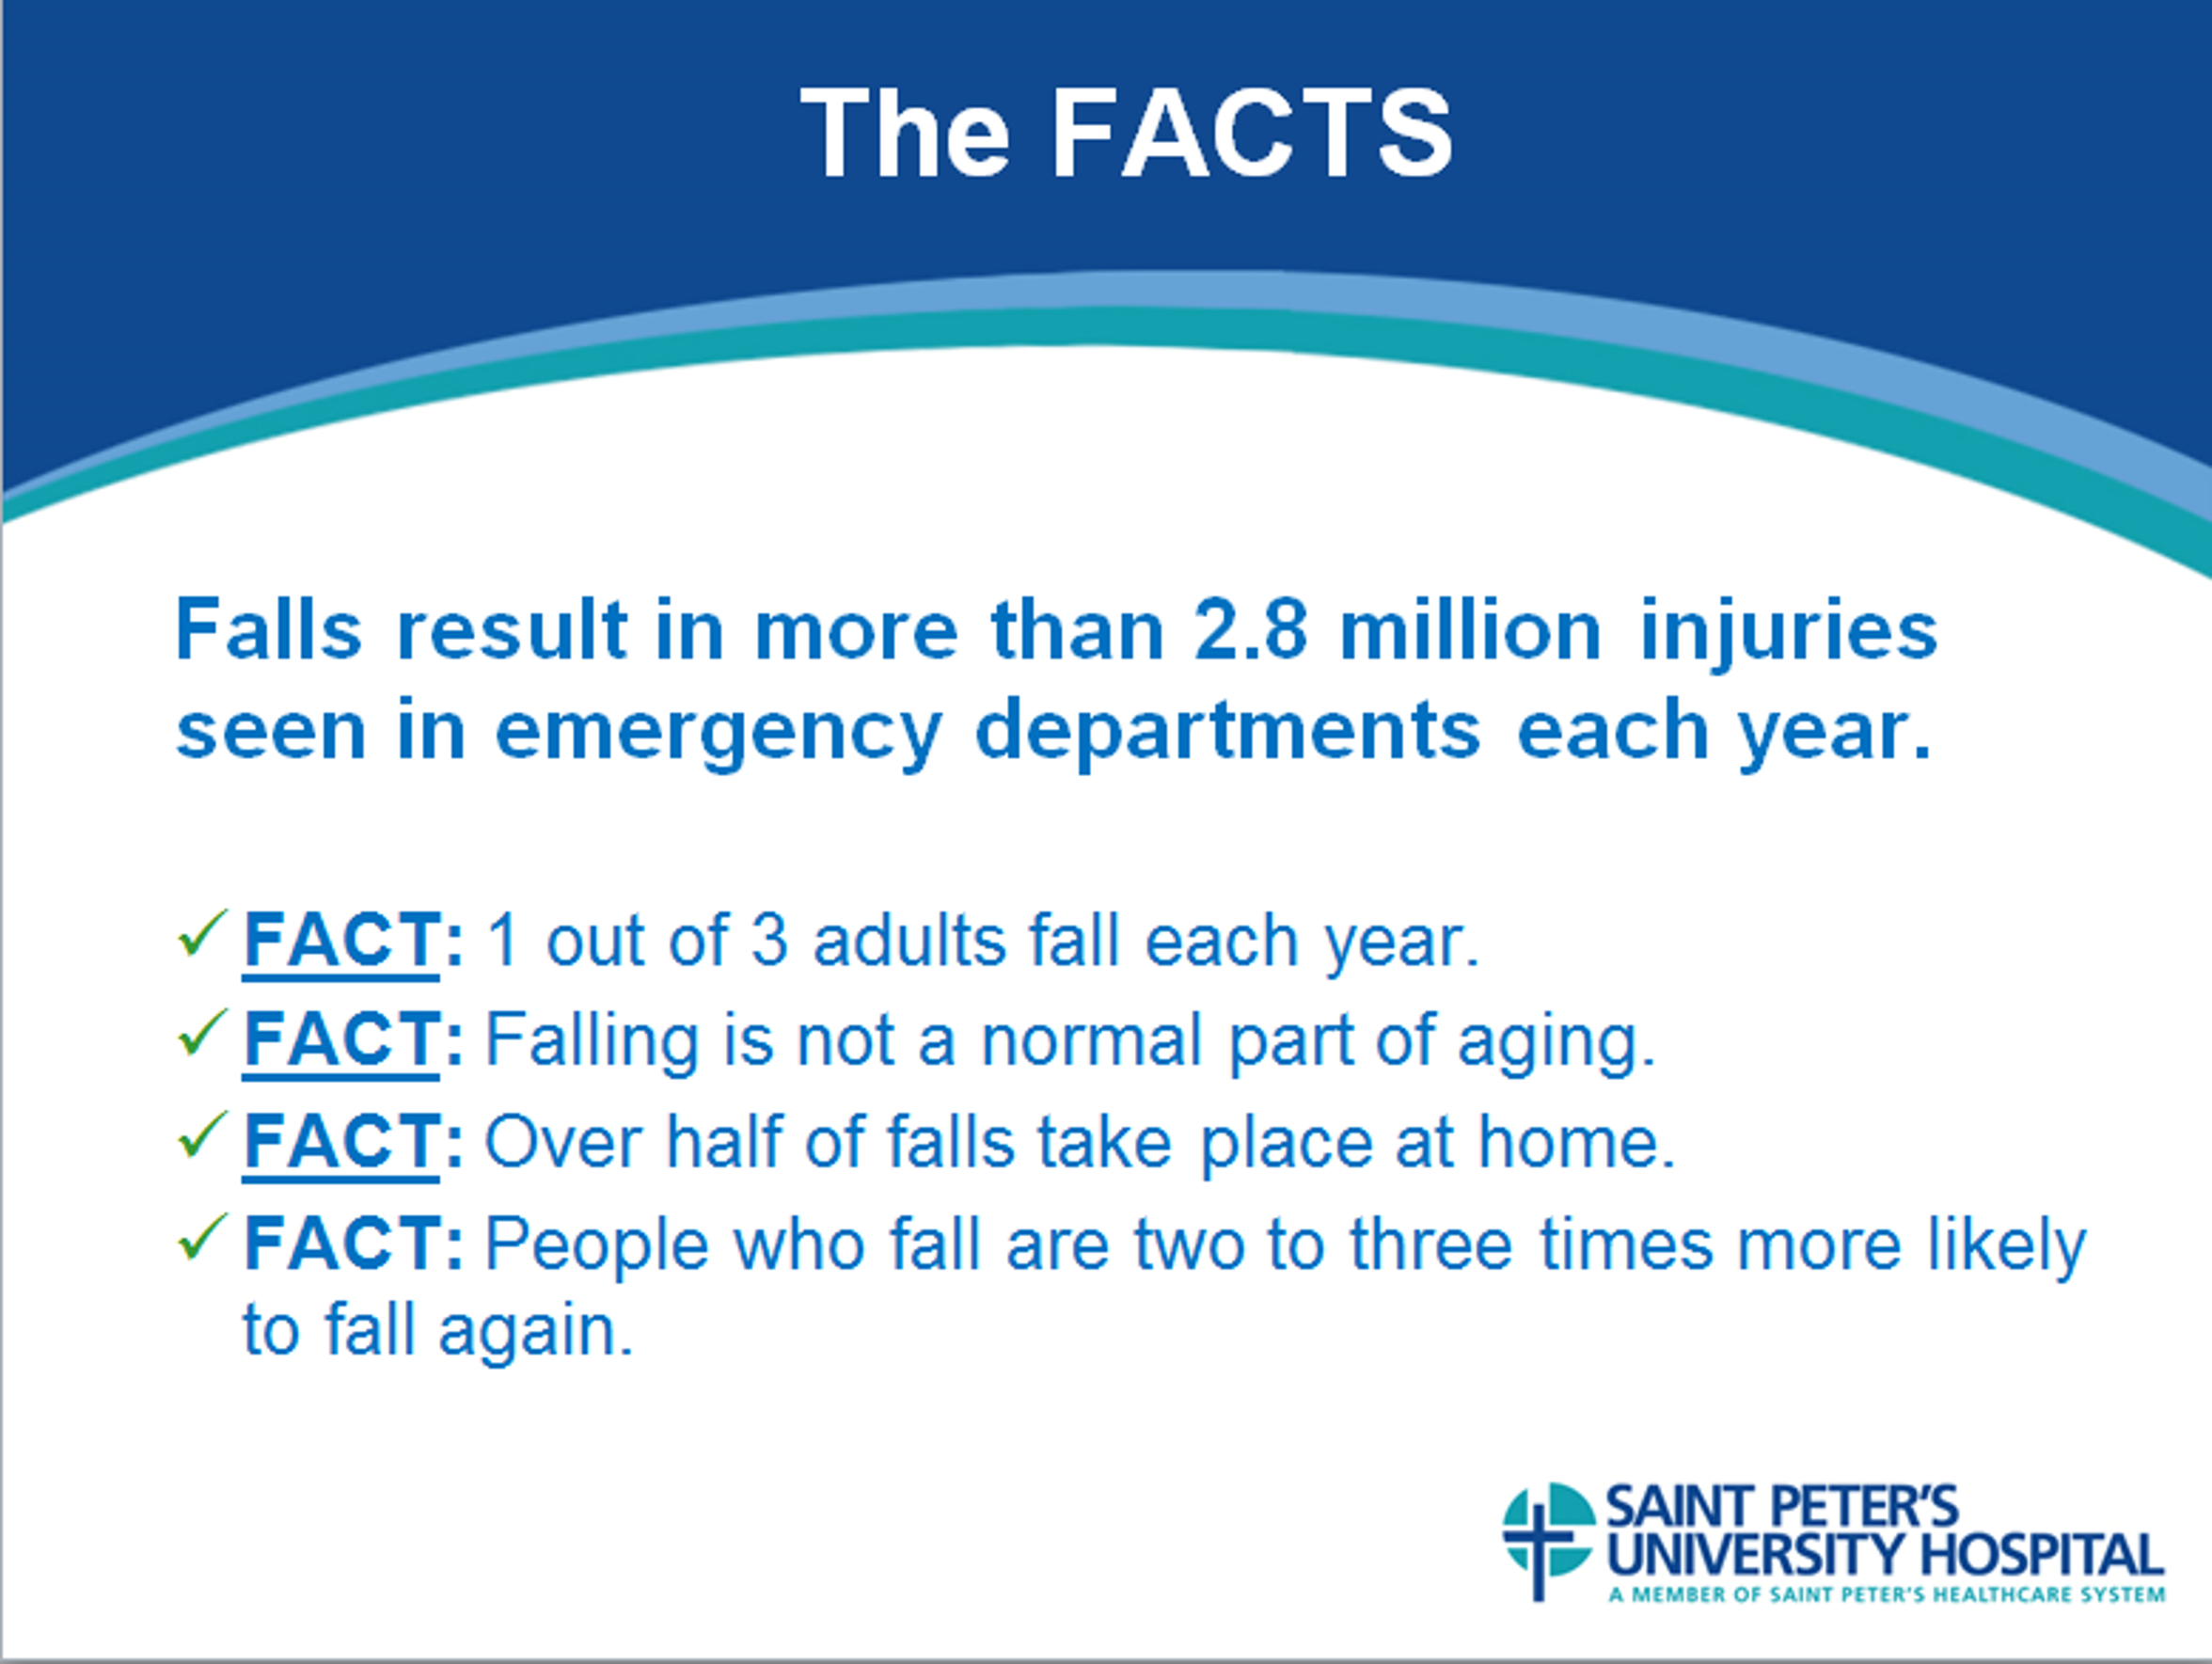 The Facts of Falling